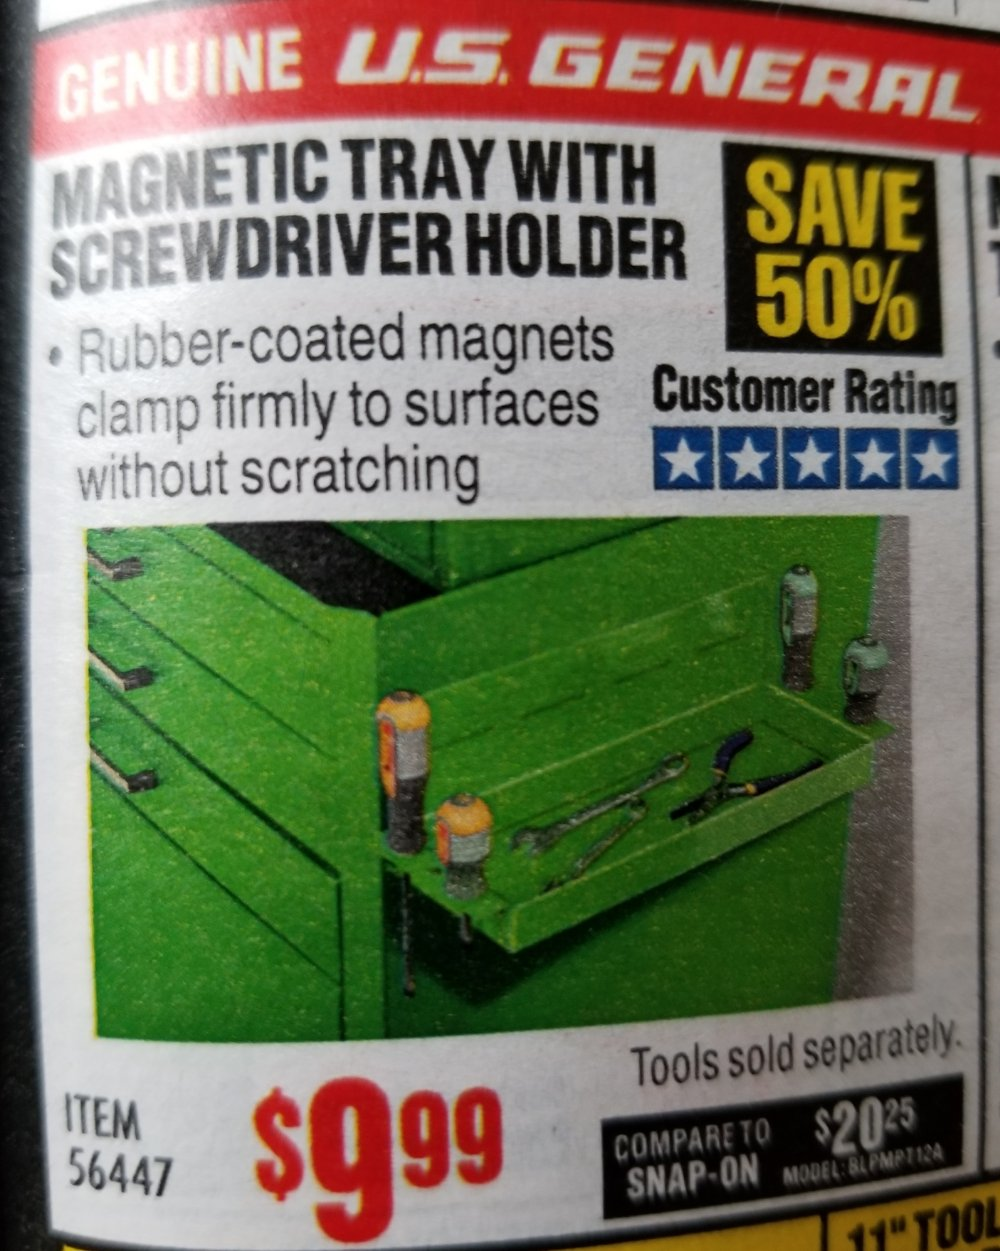 Harbor Freight Coupon, HF Coupons - Magnetic Trays With Screwdriver Holder